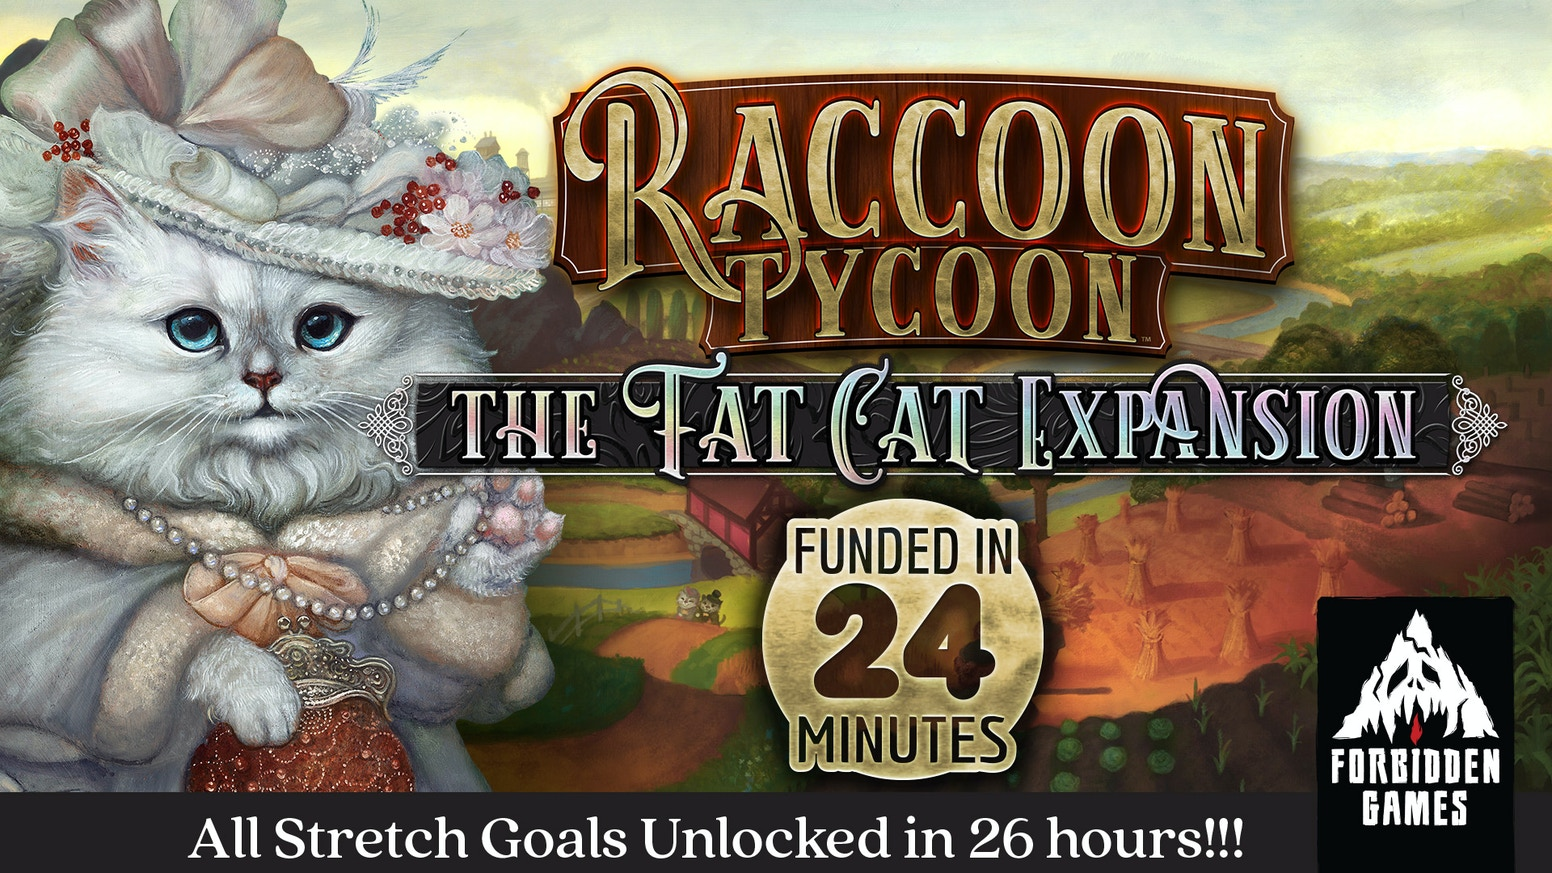 Upgrade your casual Raccoon into a strategic gamer Fat Cat!